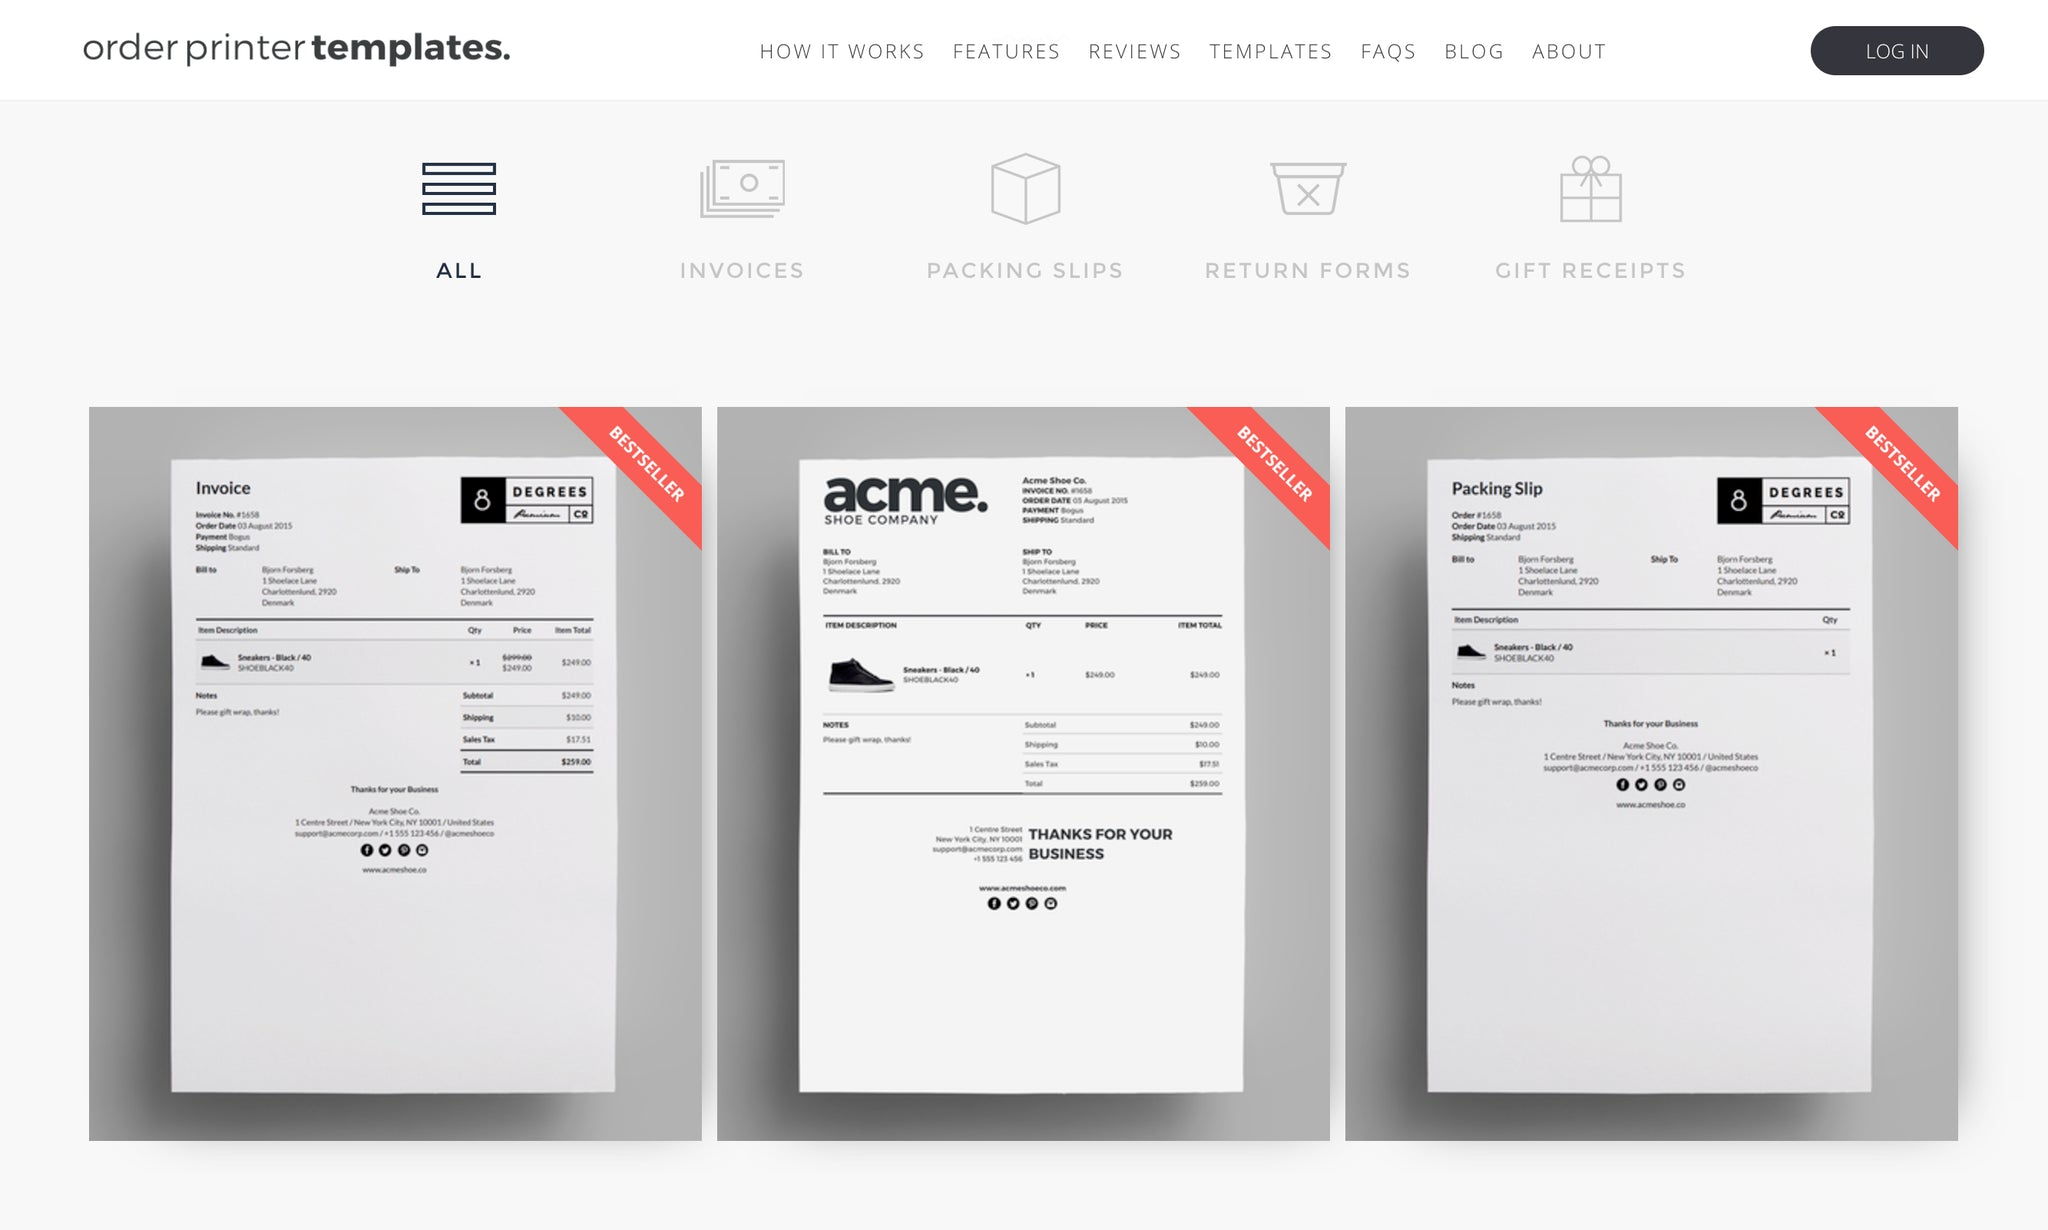 Invoices In Shopify The Definitive Guide Shopify You - Invoice app reviews